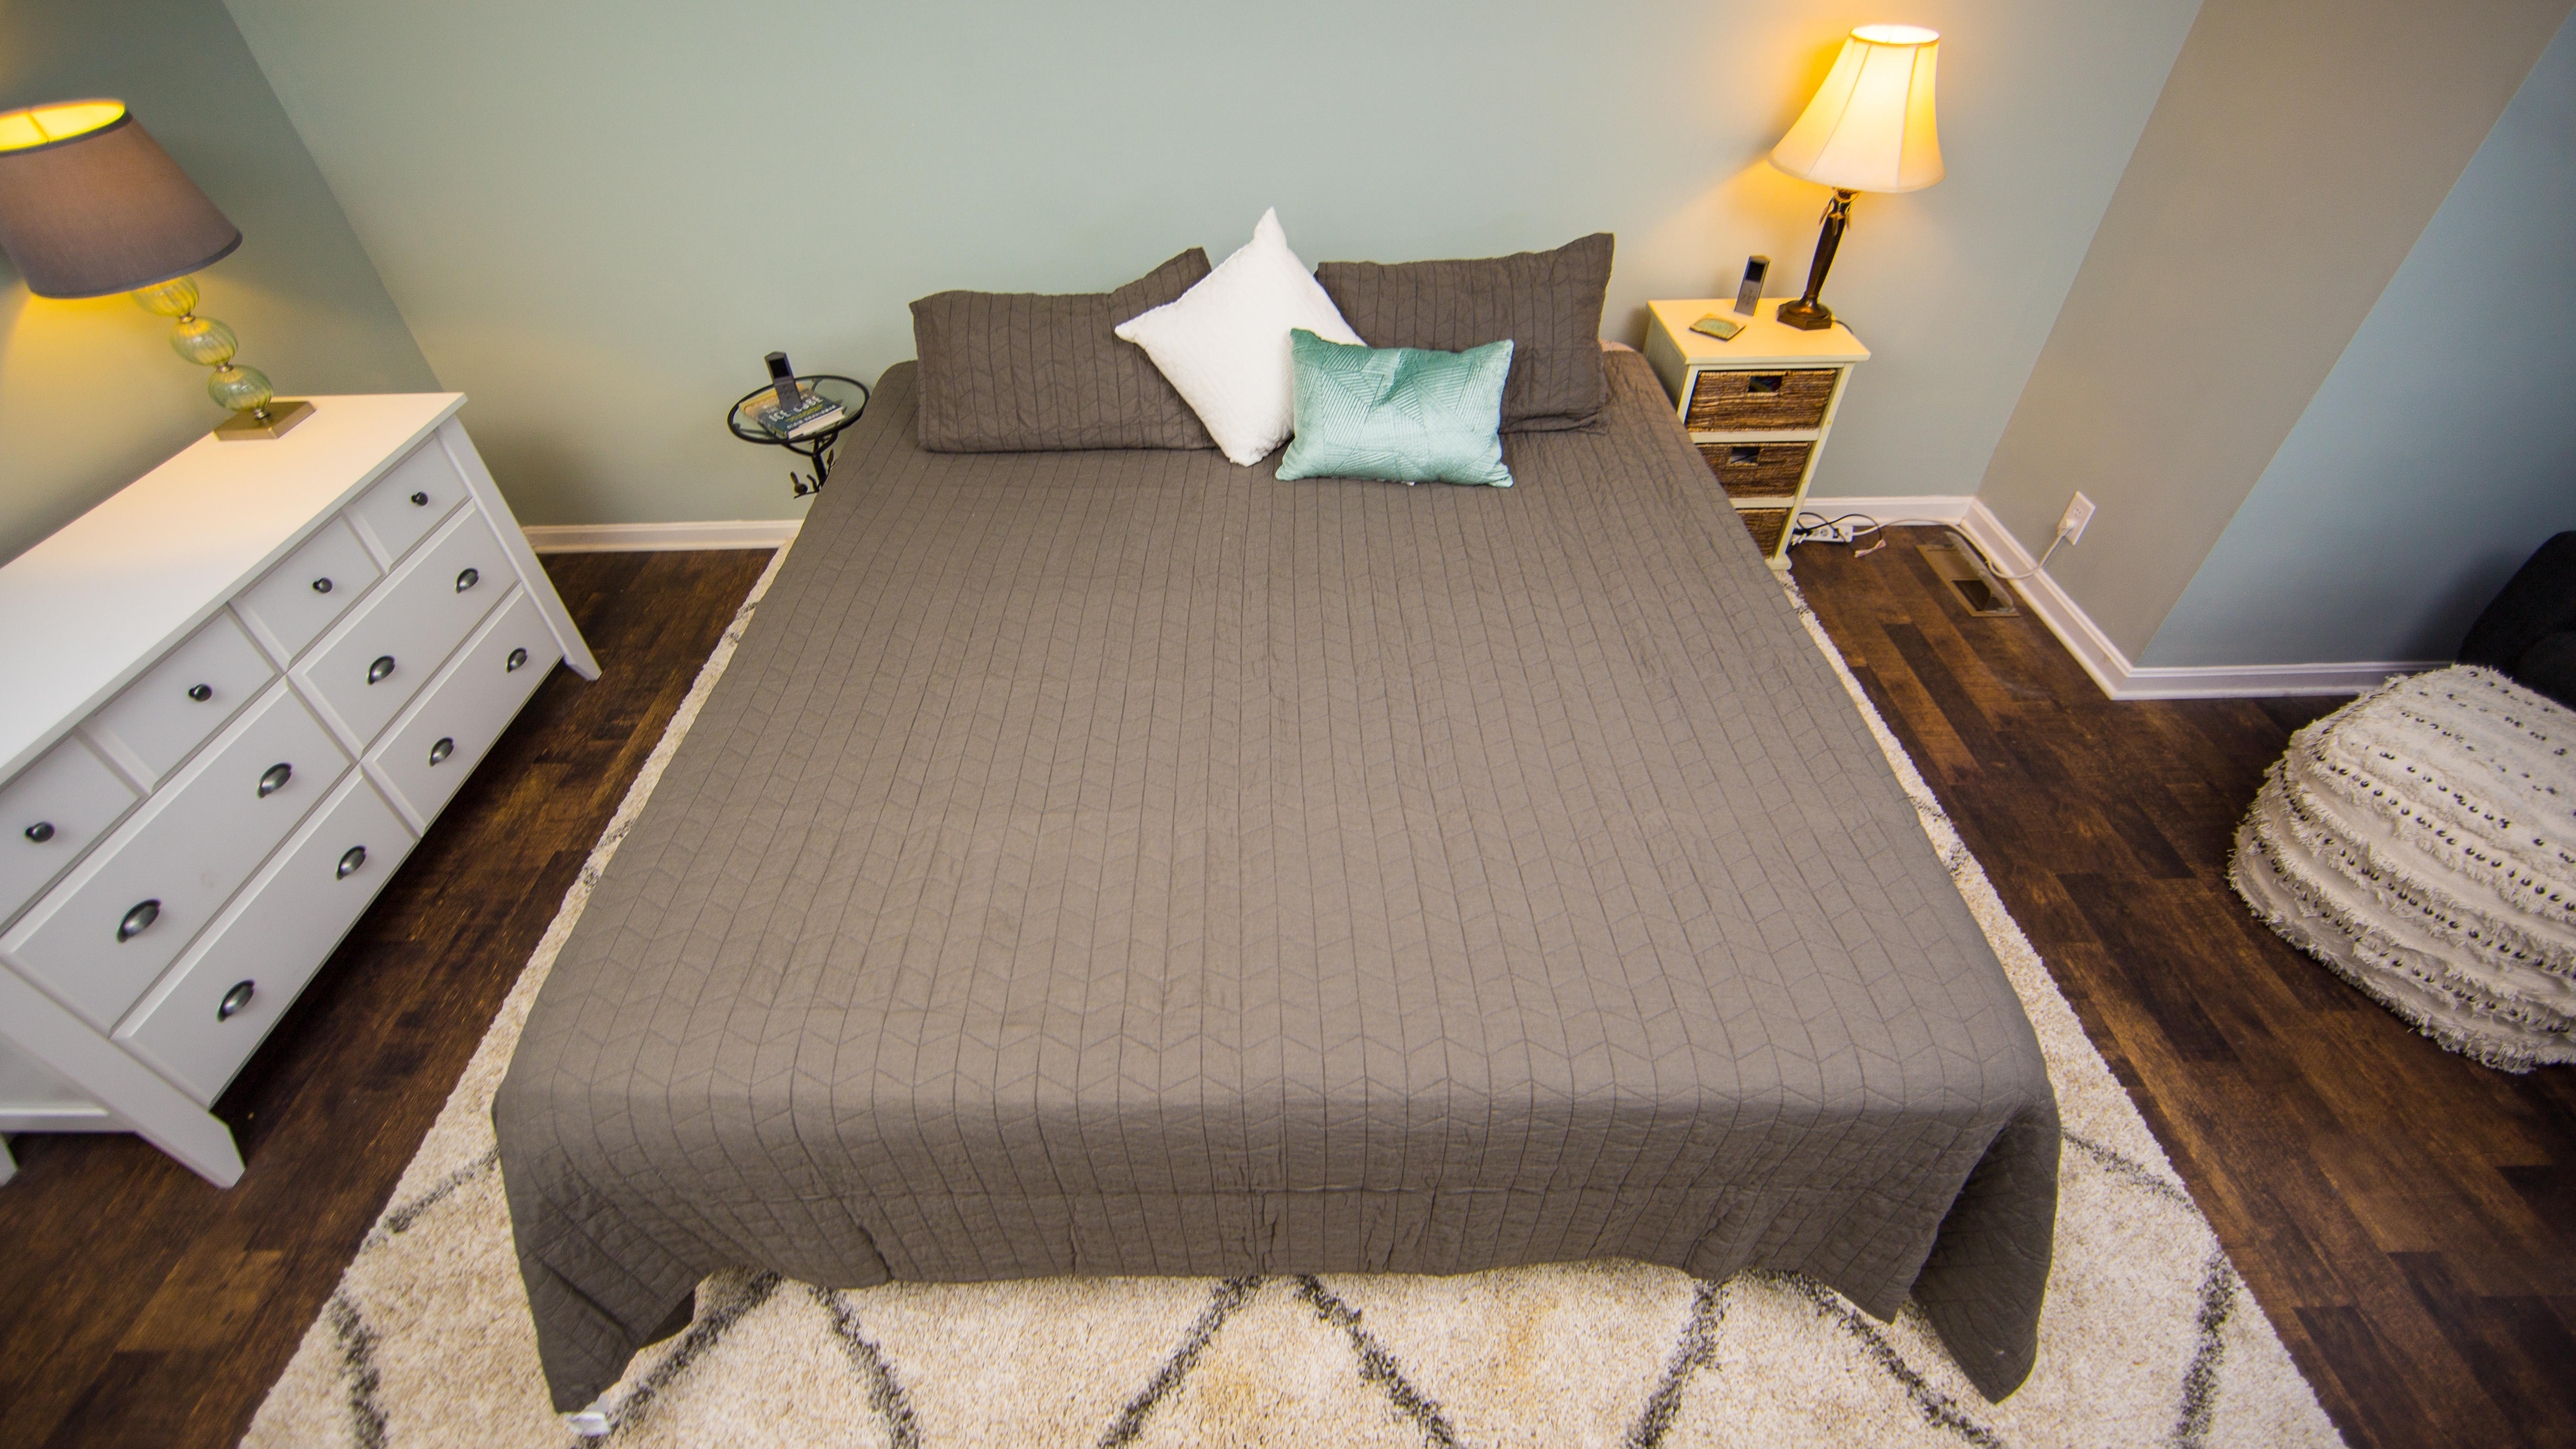 This 7 600 Smart Bed Isn T, How Much Is A Sleep Number 360 Limited Edition Smart Bed